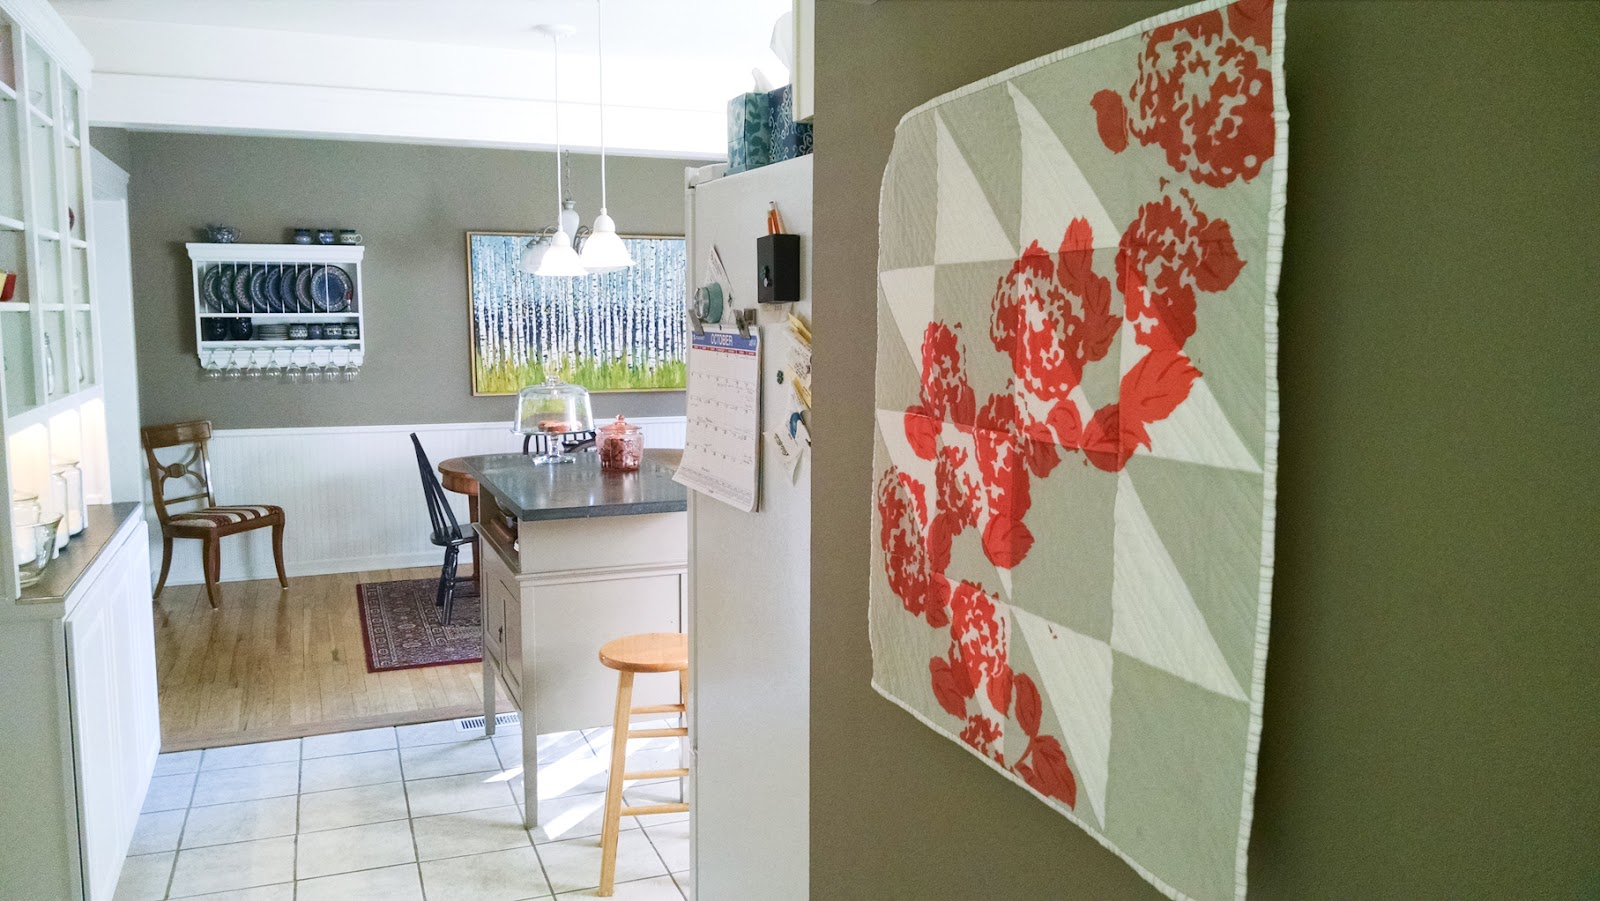 New Growth coral modern printed wall quilt living in its Ann Arbor home   by Lovely and Enough